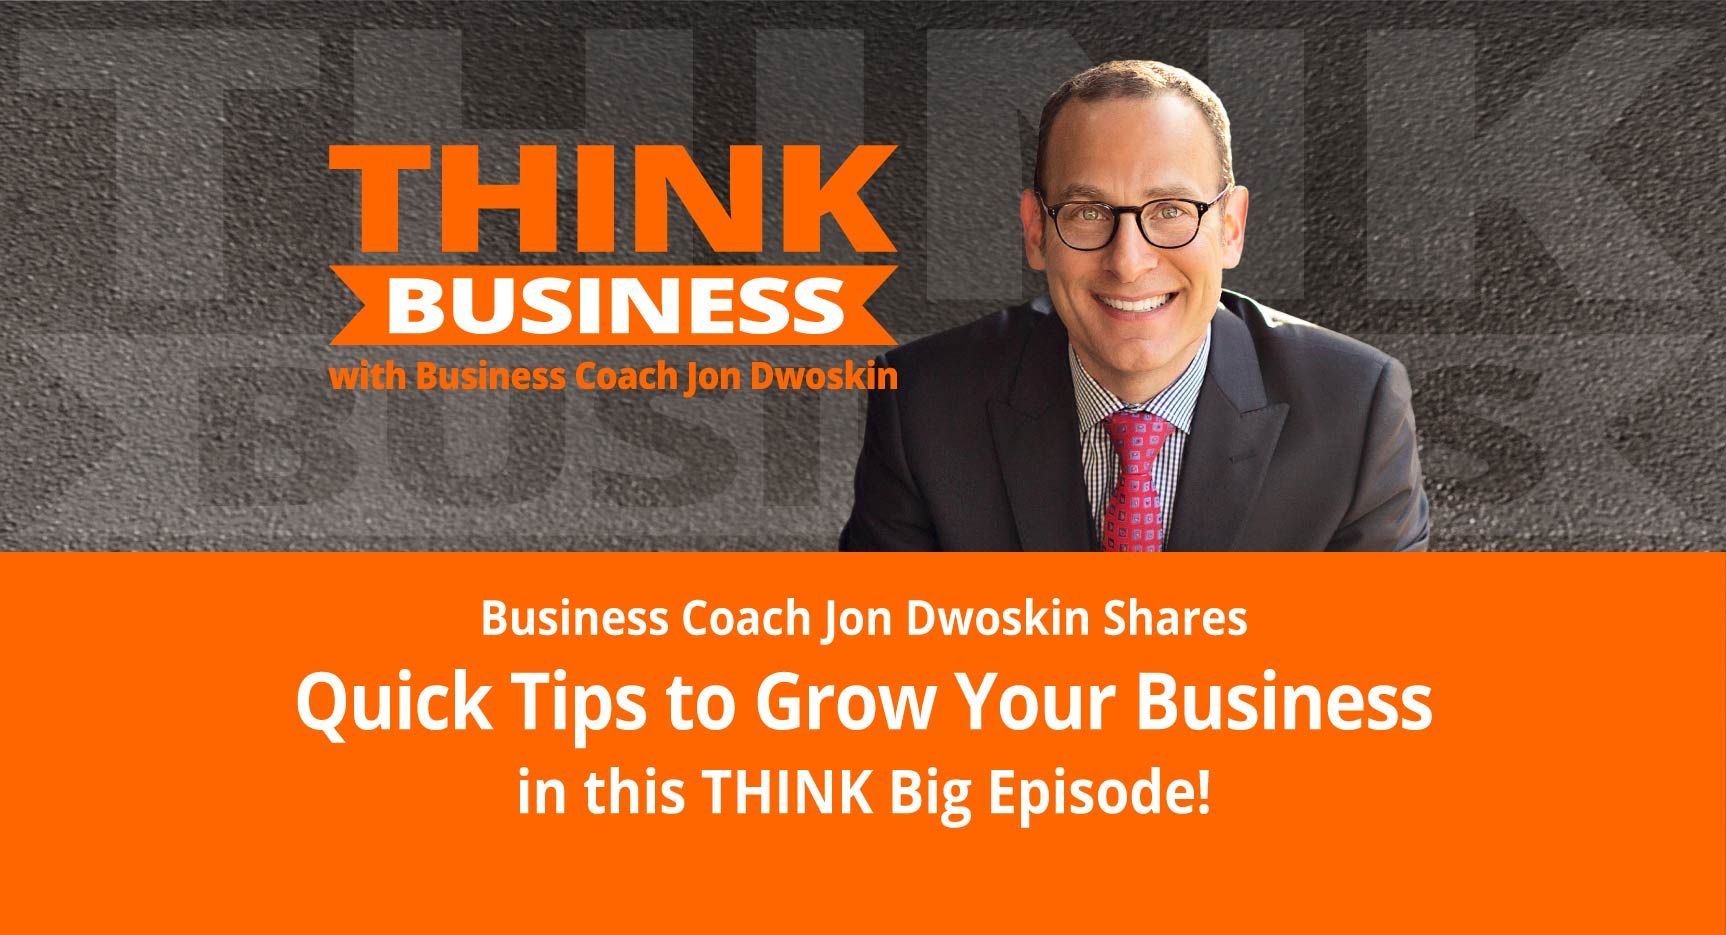 THINK Business Podcast: Today's Quick Tip: Map Out Your Three Year Vision